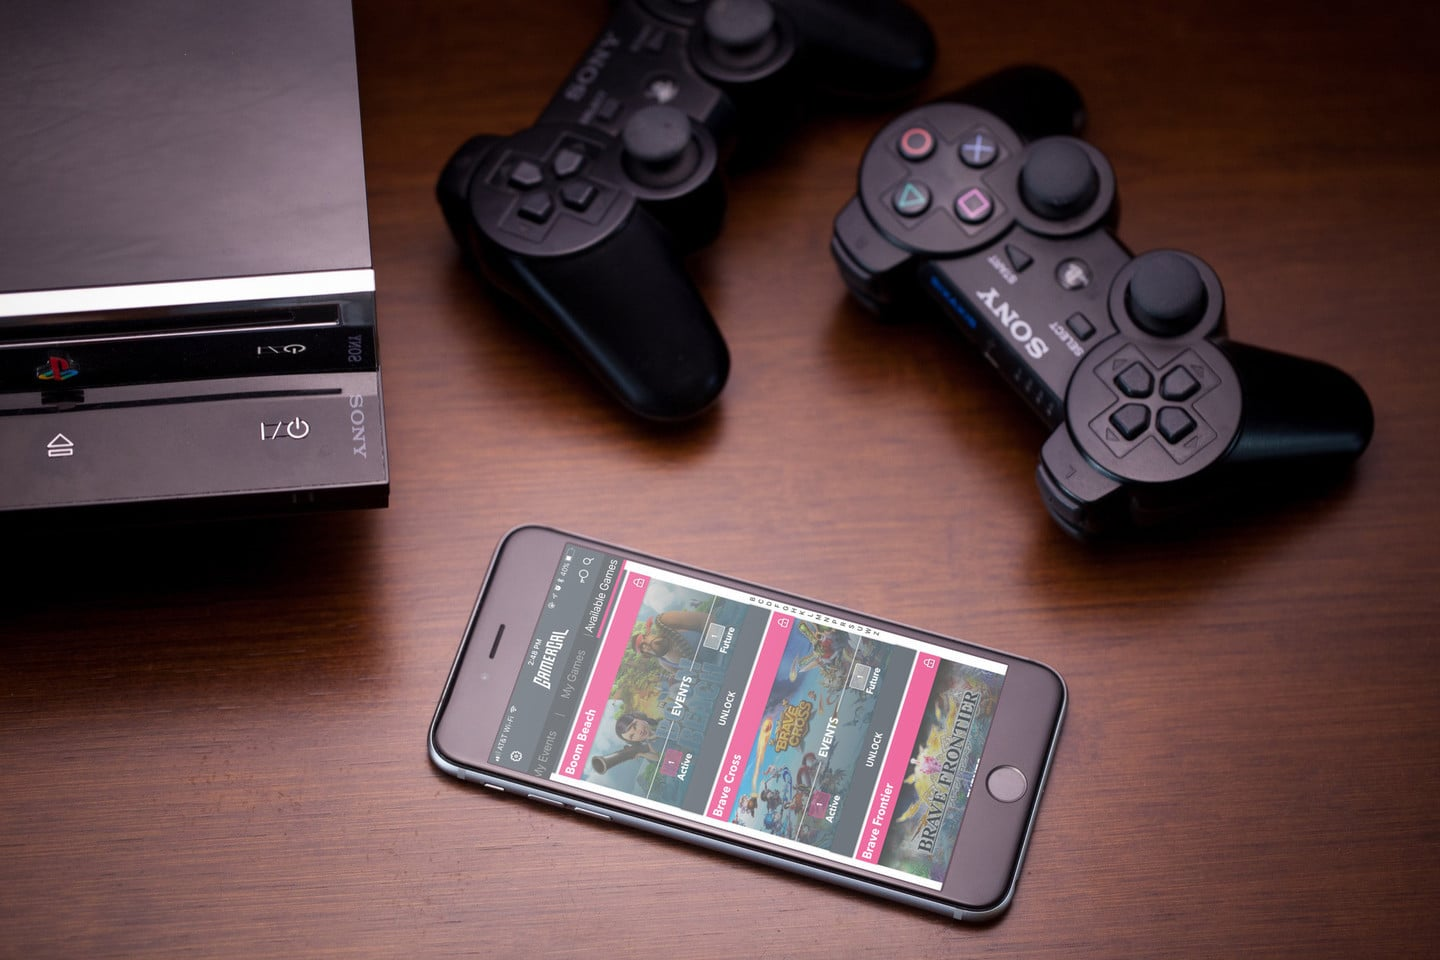 GamerCal Offers Amazing Notifications for Your Favorite Games